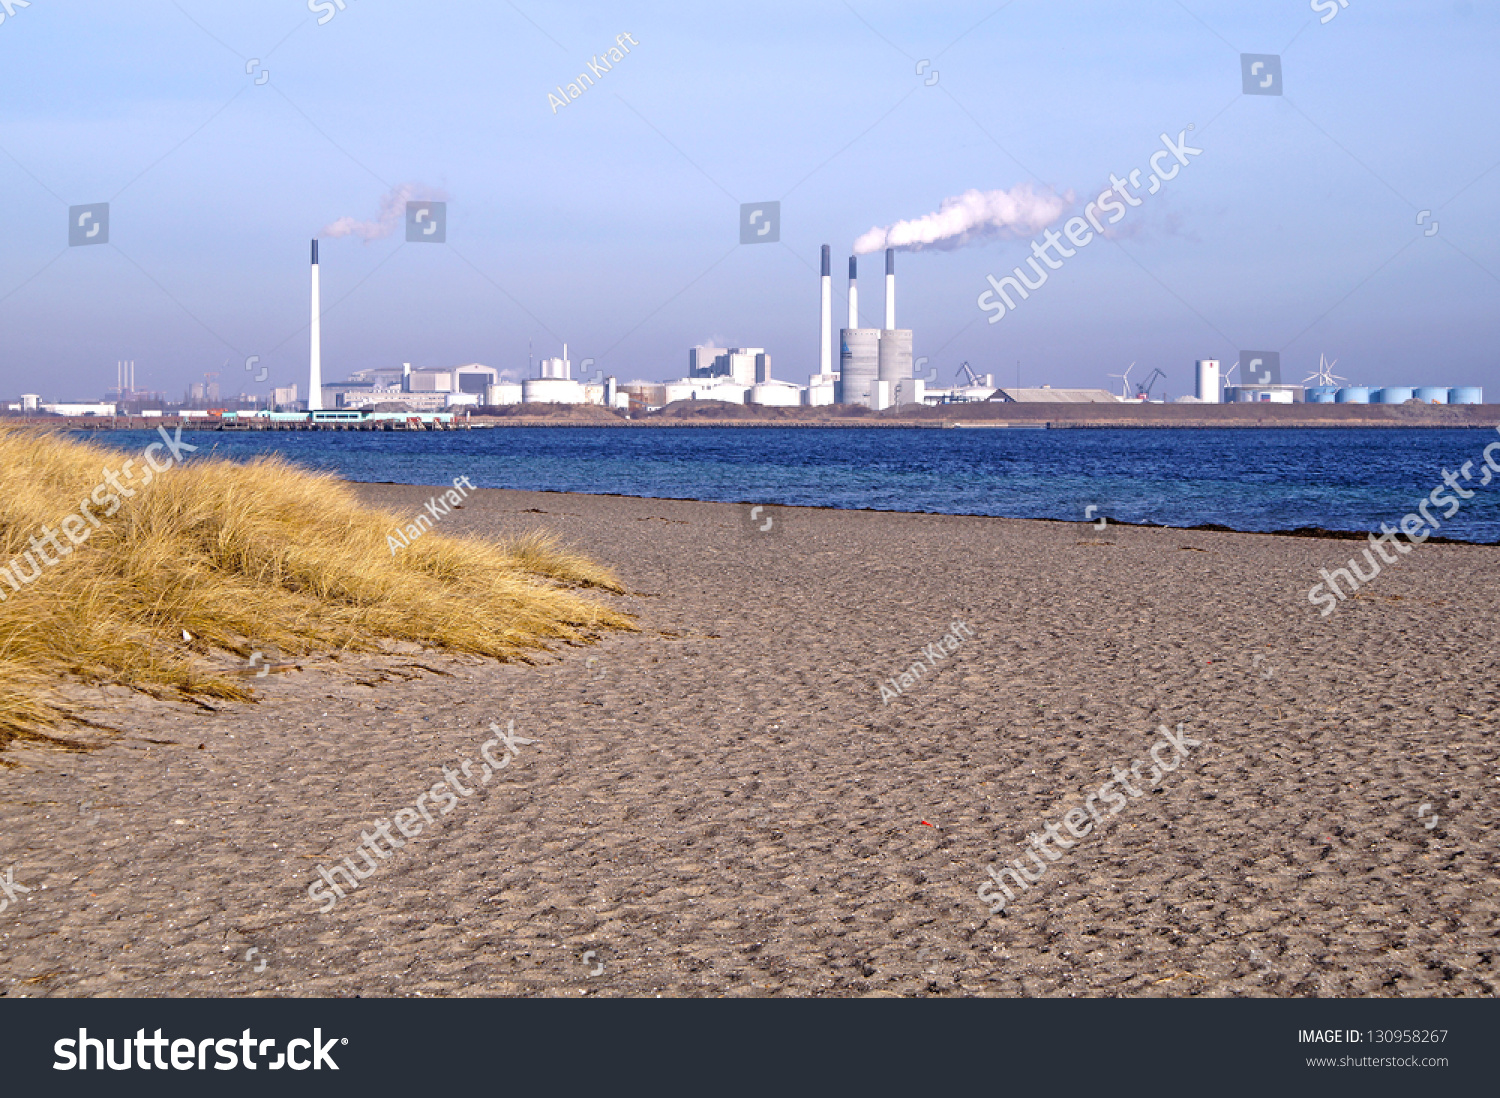 Amager Beach Park amager beach park amager power station stock photo (edit now